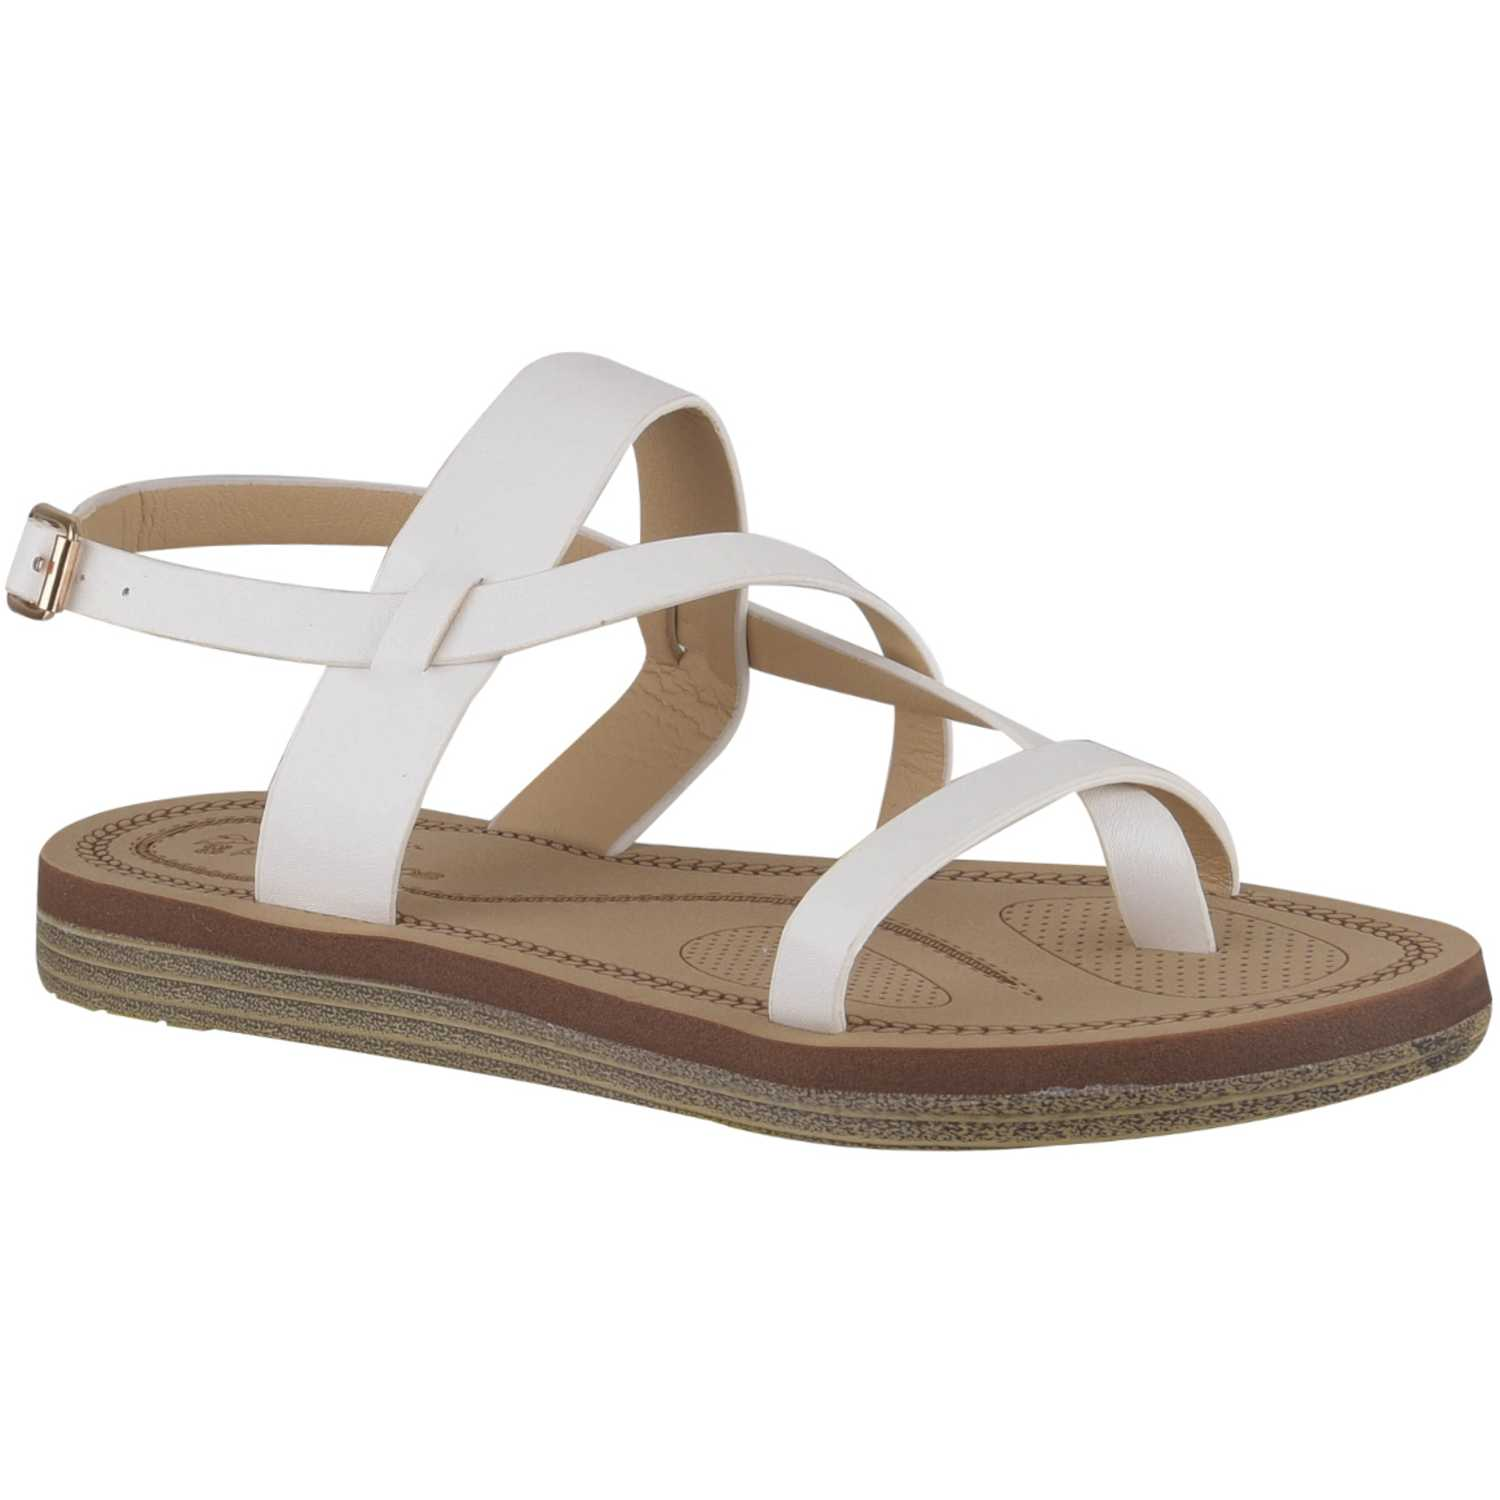 Platanitos sf 6713 Blanco Flats